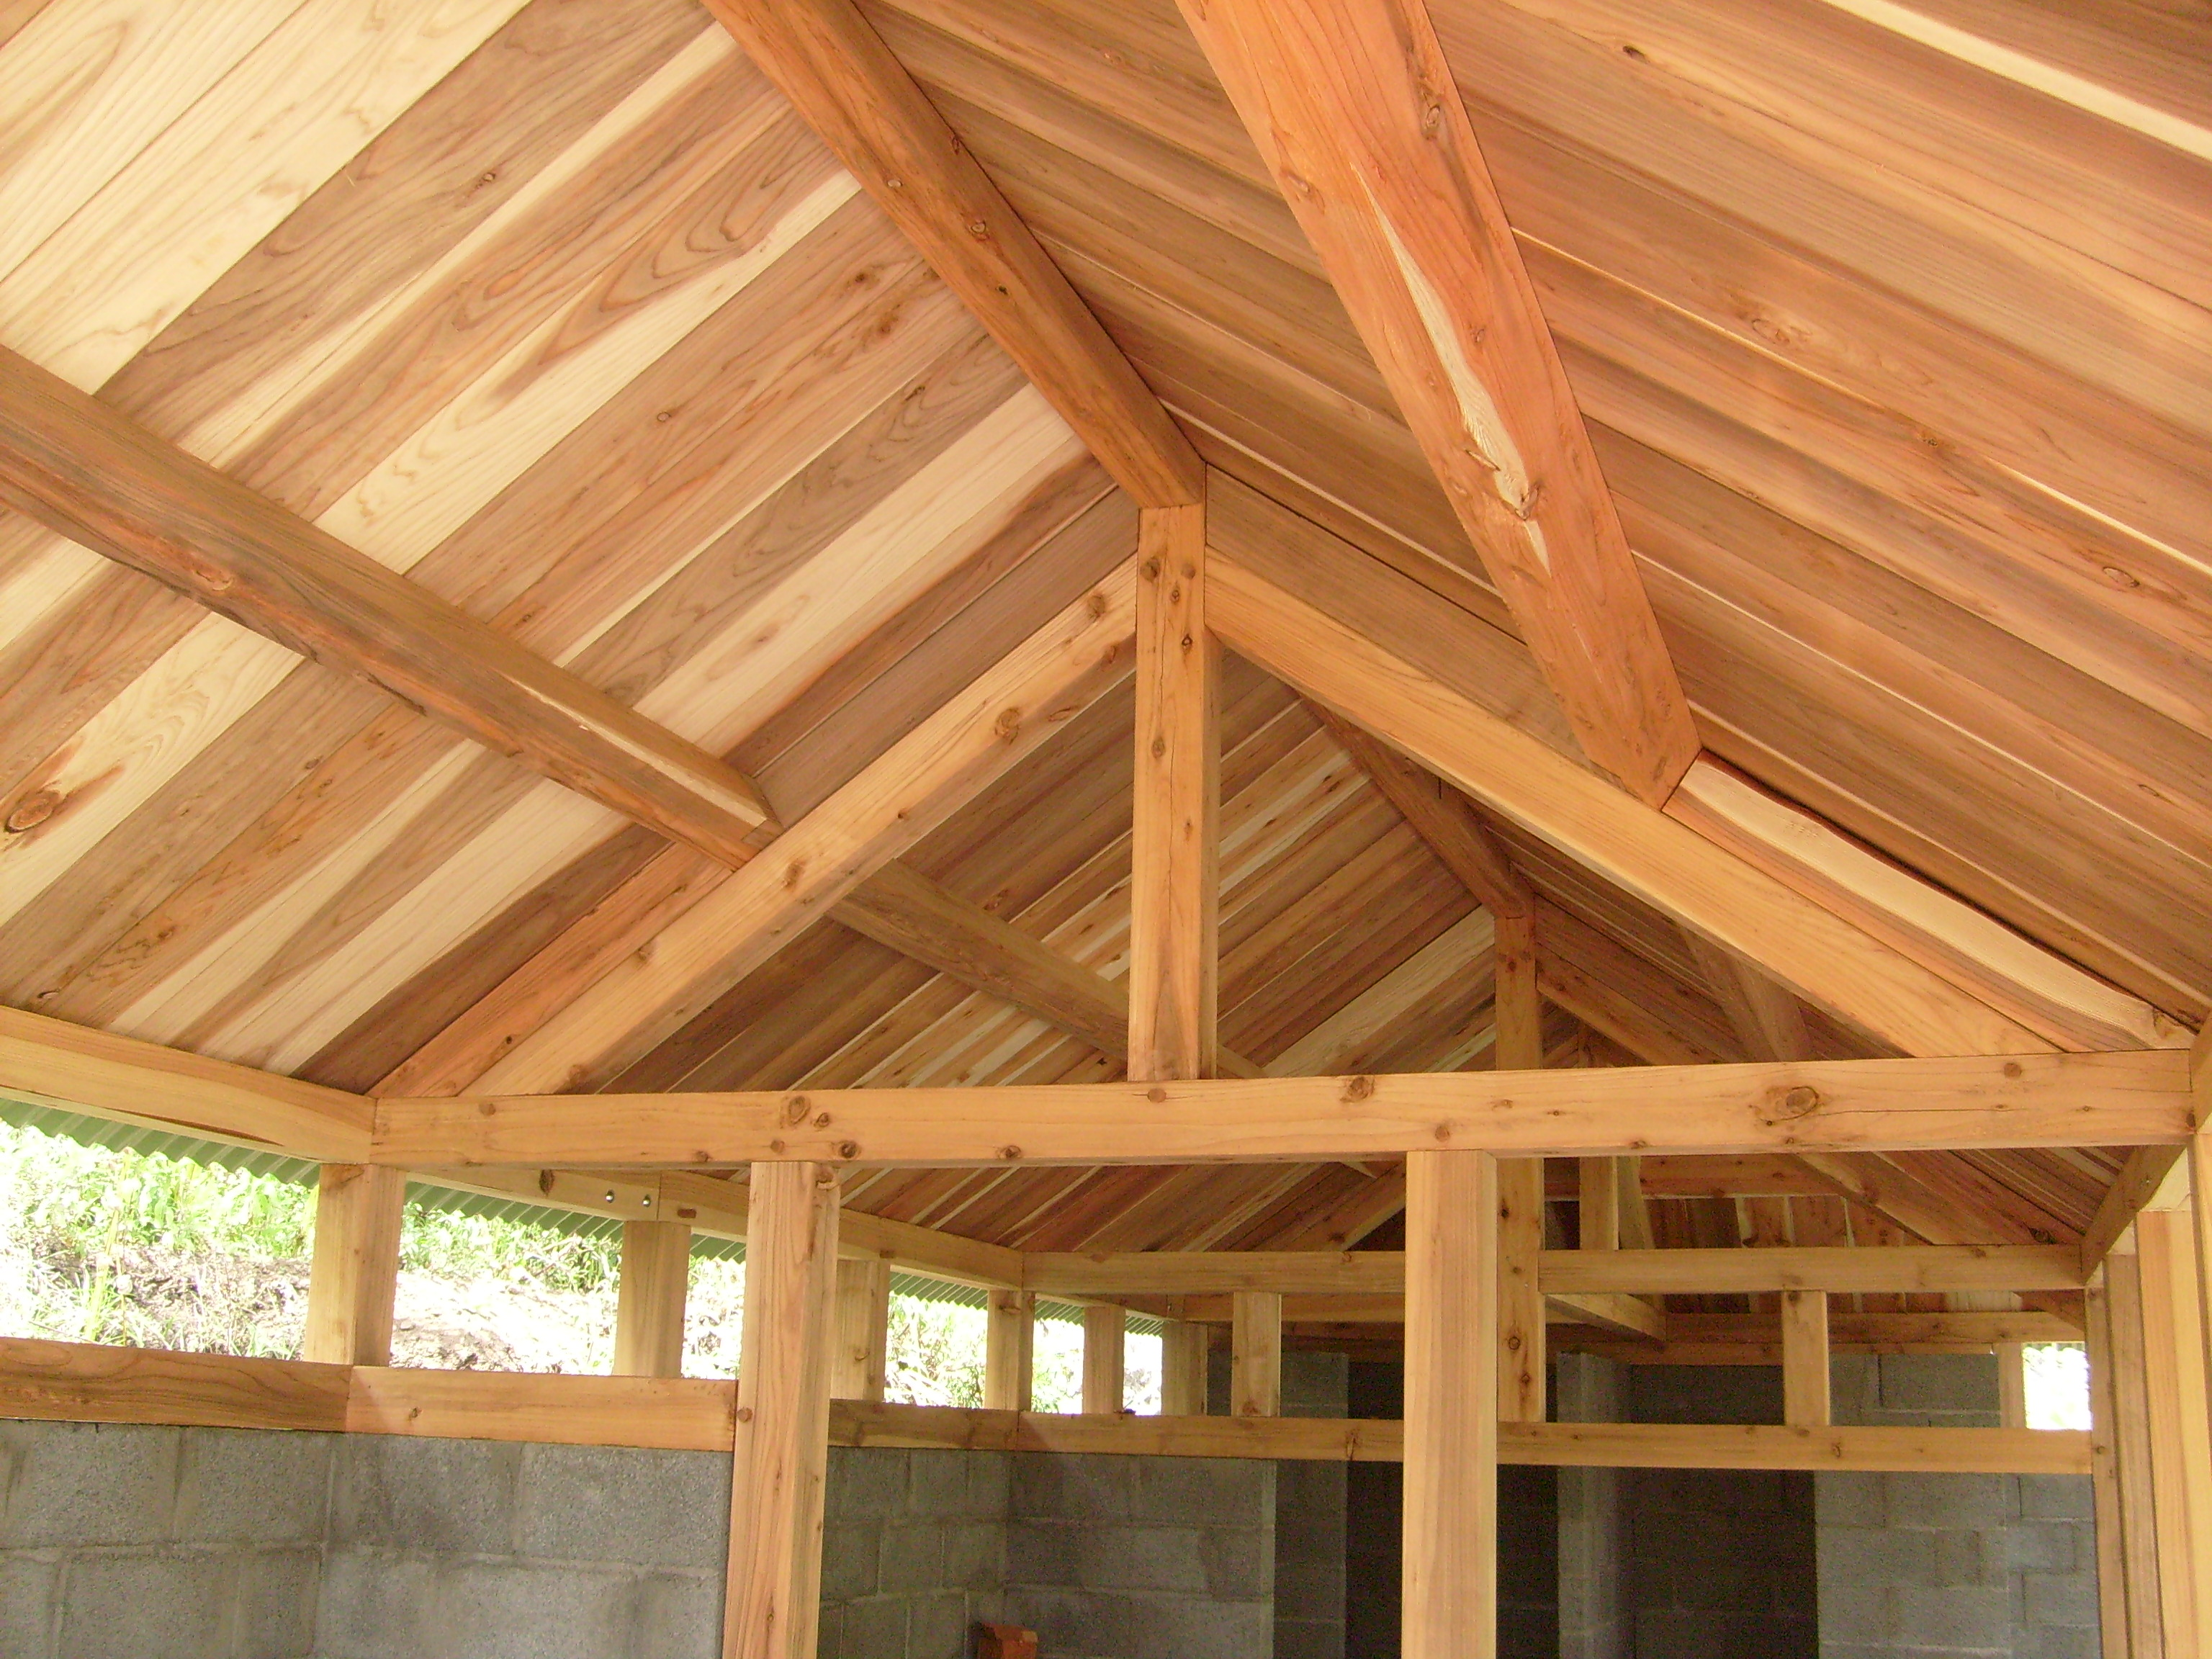 Indoor roof structure